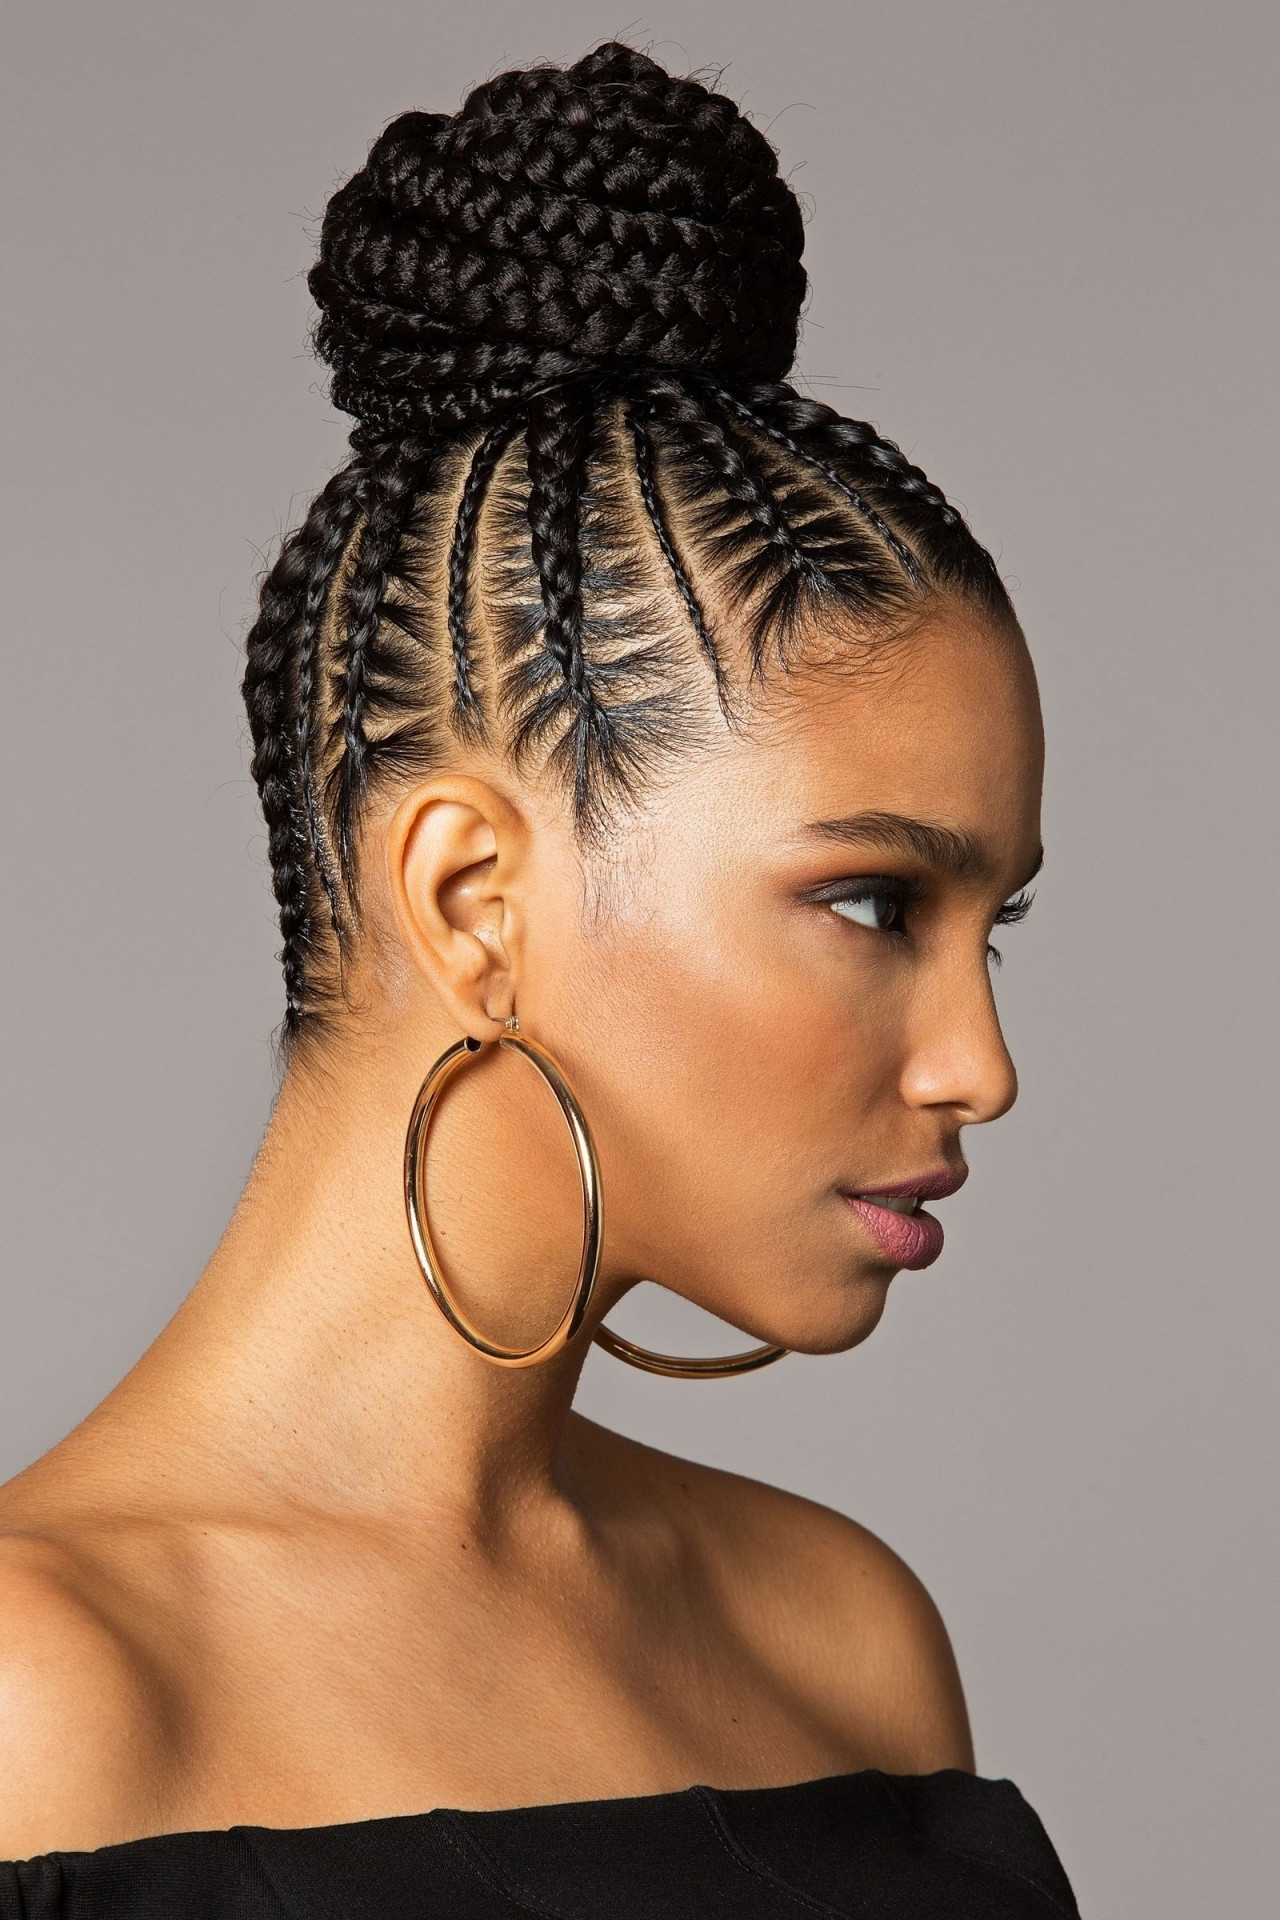 Updo Hairstyles For Black Women With Weave Elegant You Re Going To With Most Recent Braided Up Hairstyles With Weave (View 15 of 15)